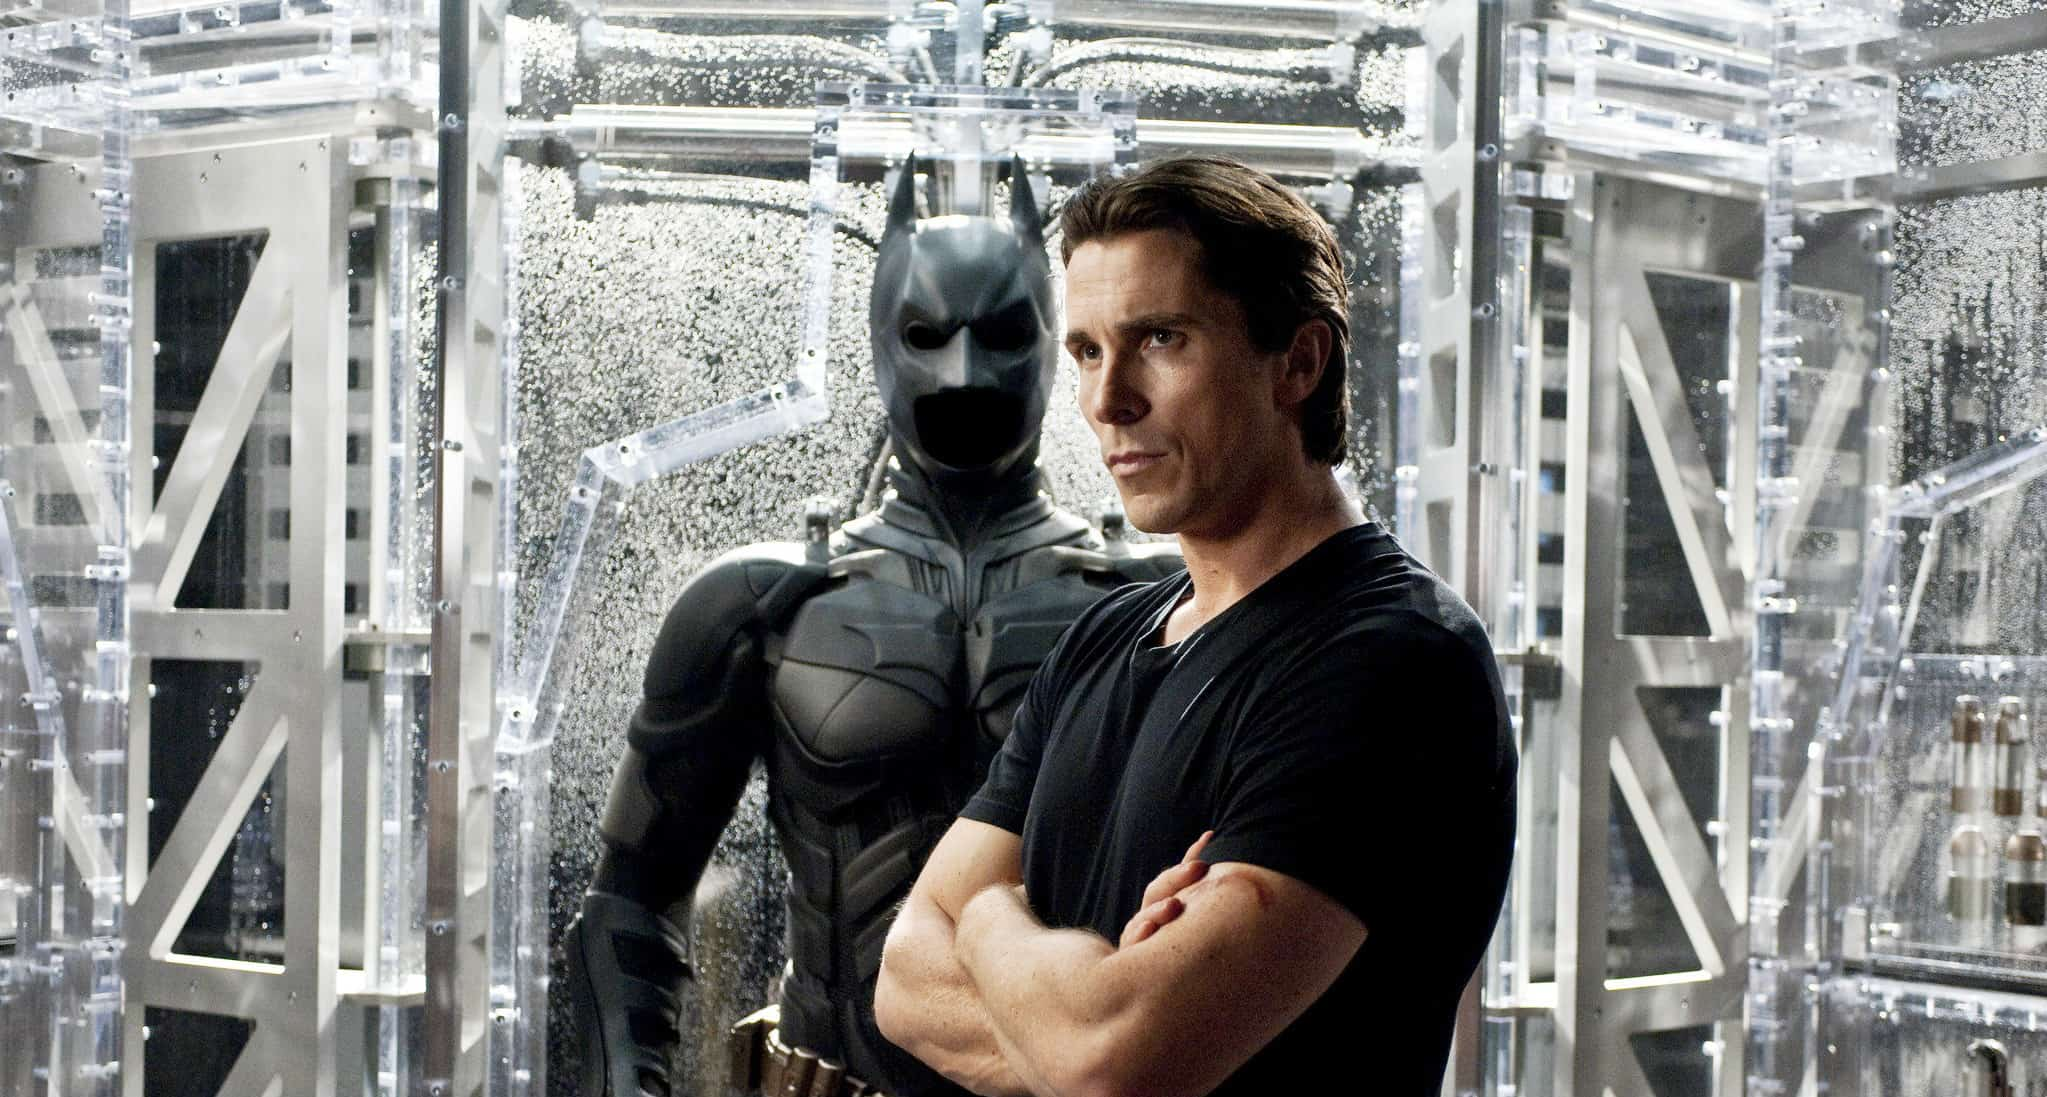 Christian bale batman c2edited  1